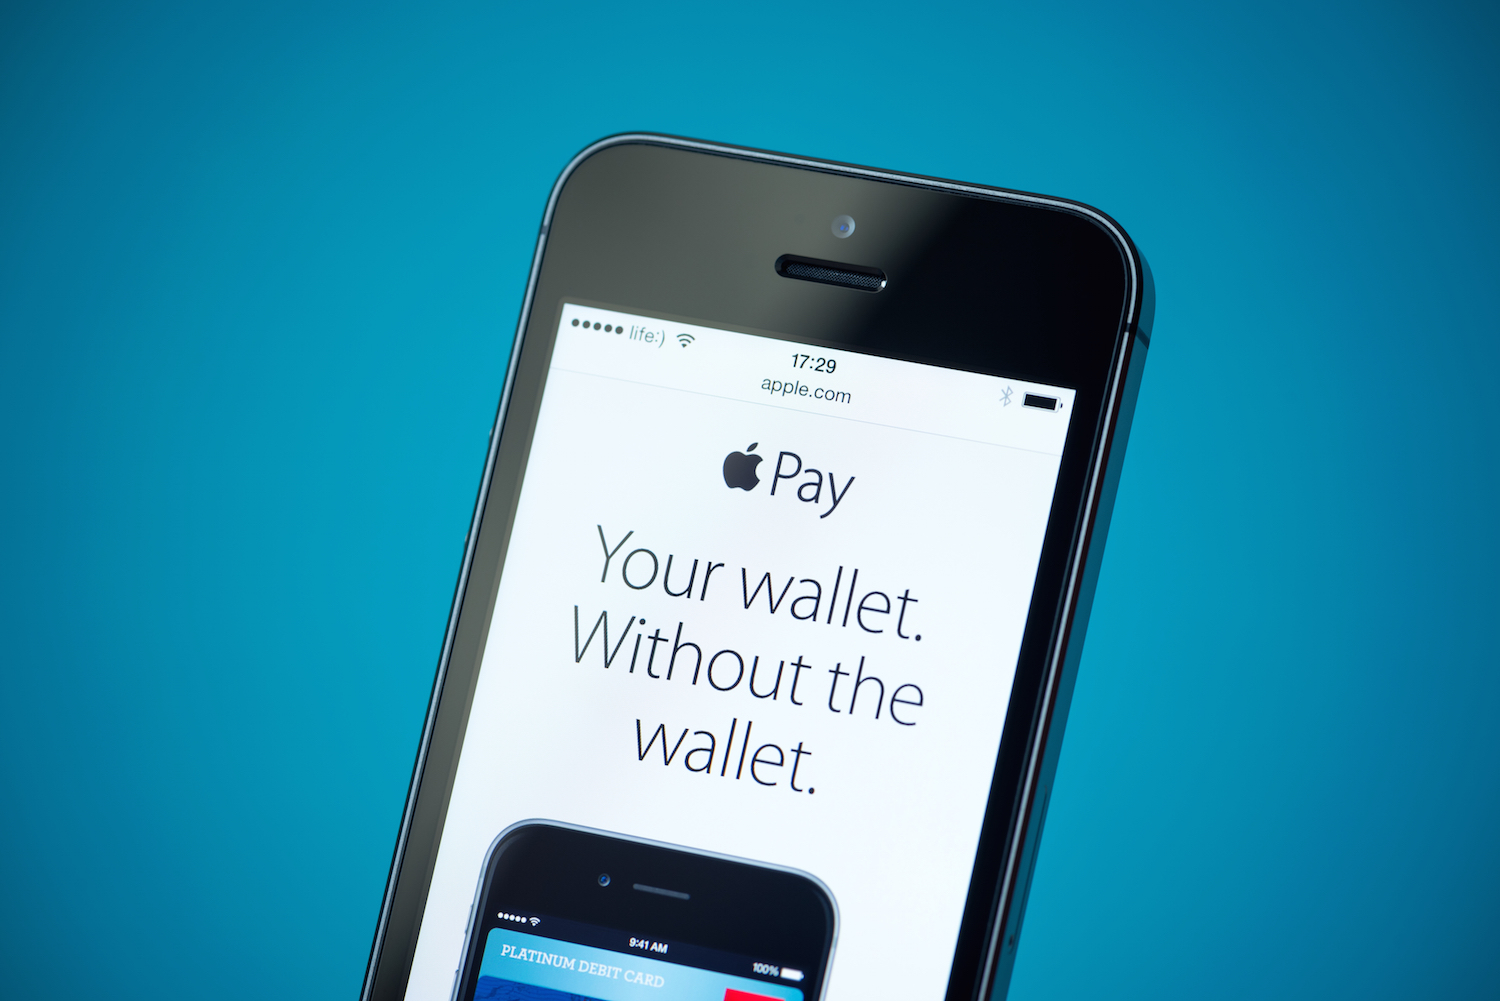 United Kingdom Apple Pay comes to HSBC and First Direct